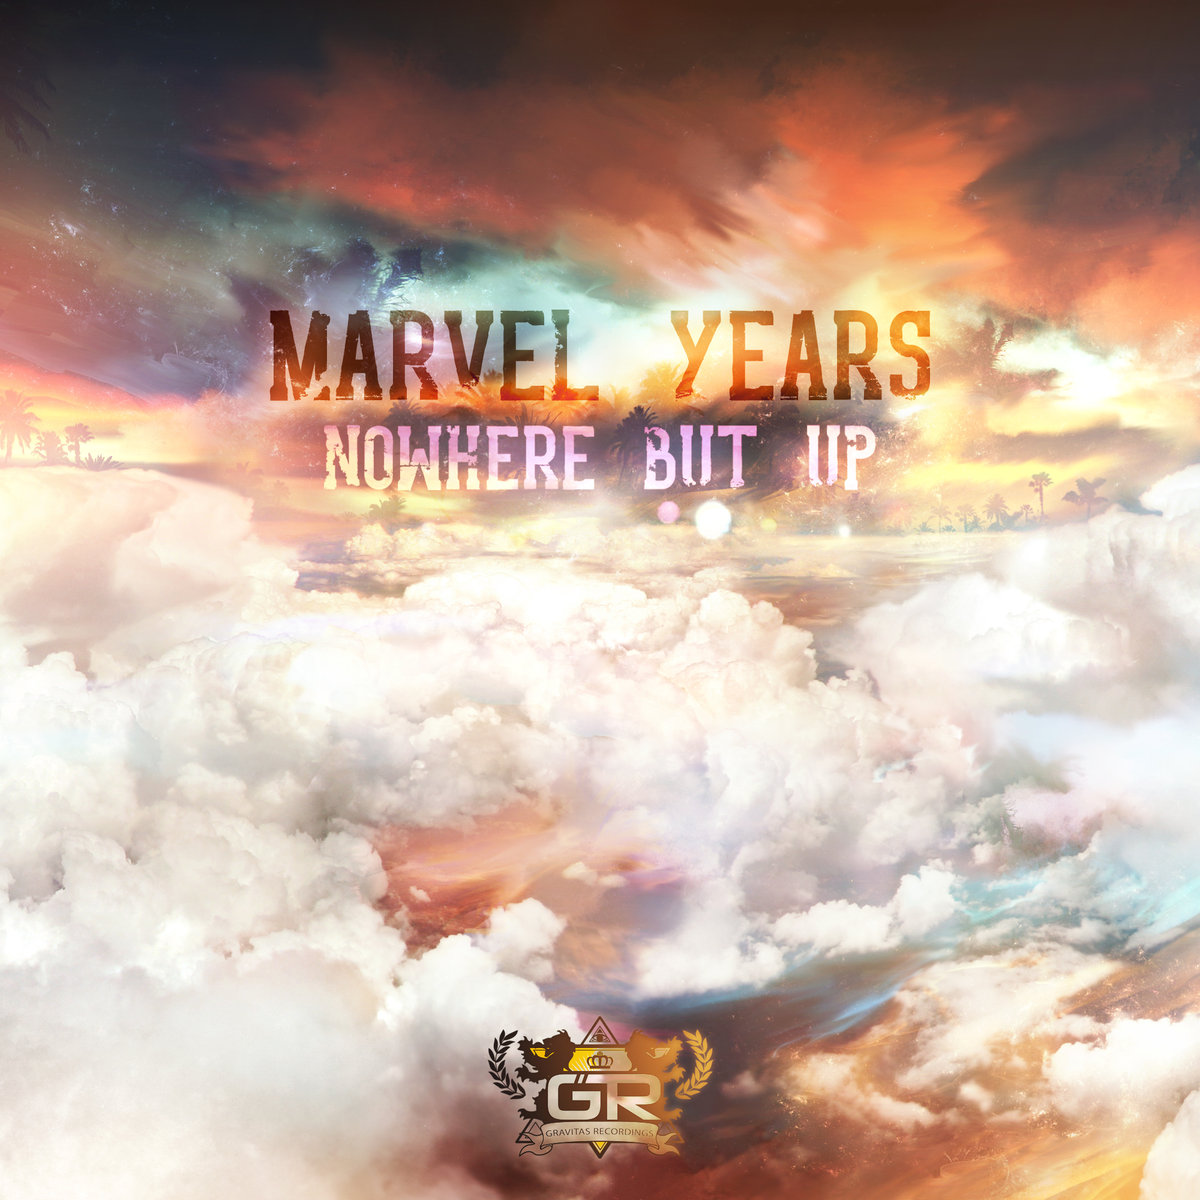 Marvel Years - Nowhere But Up @ 'Nowhere But Up' album (hip hop, electro)